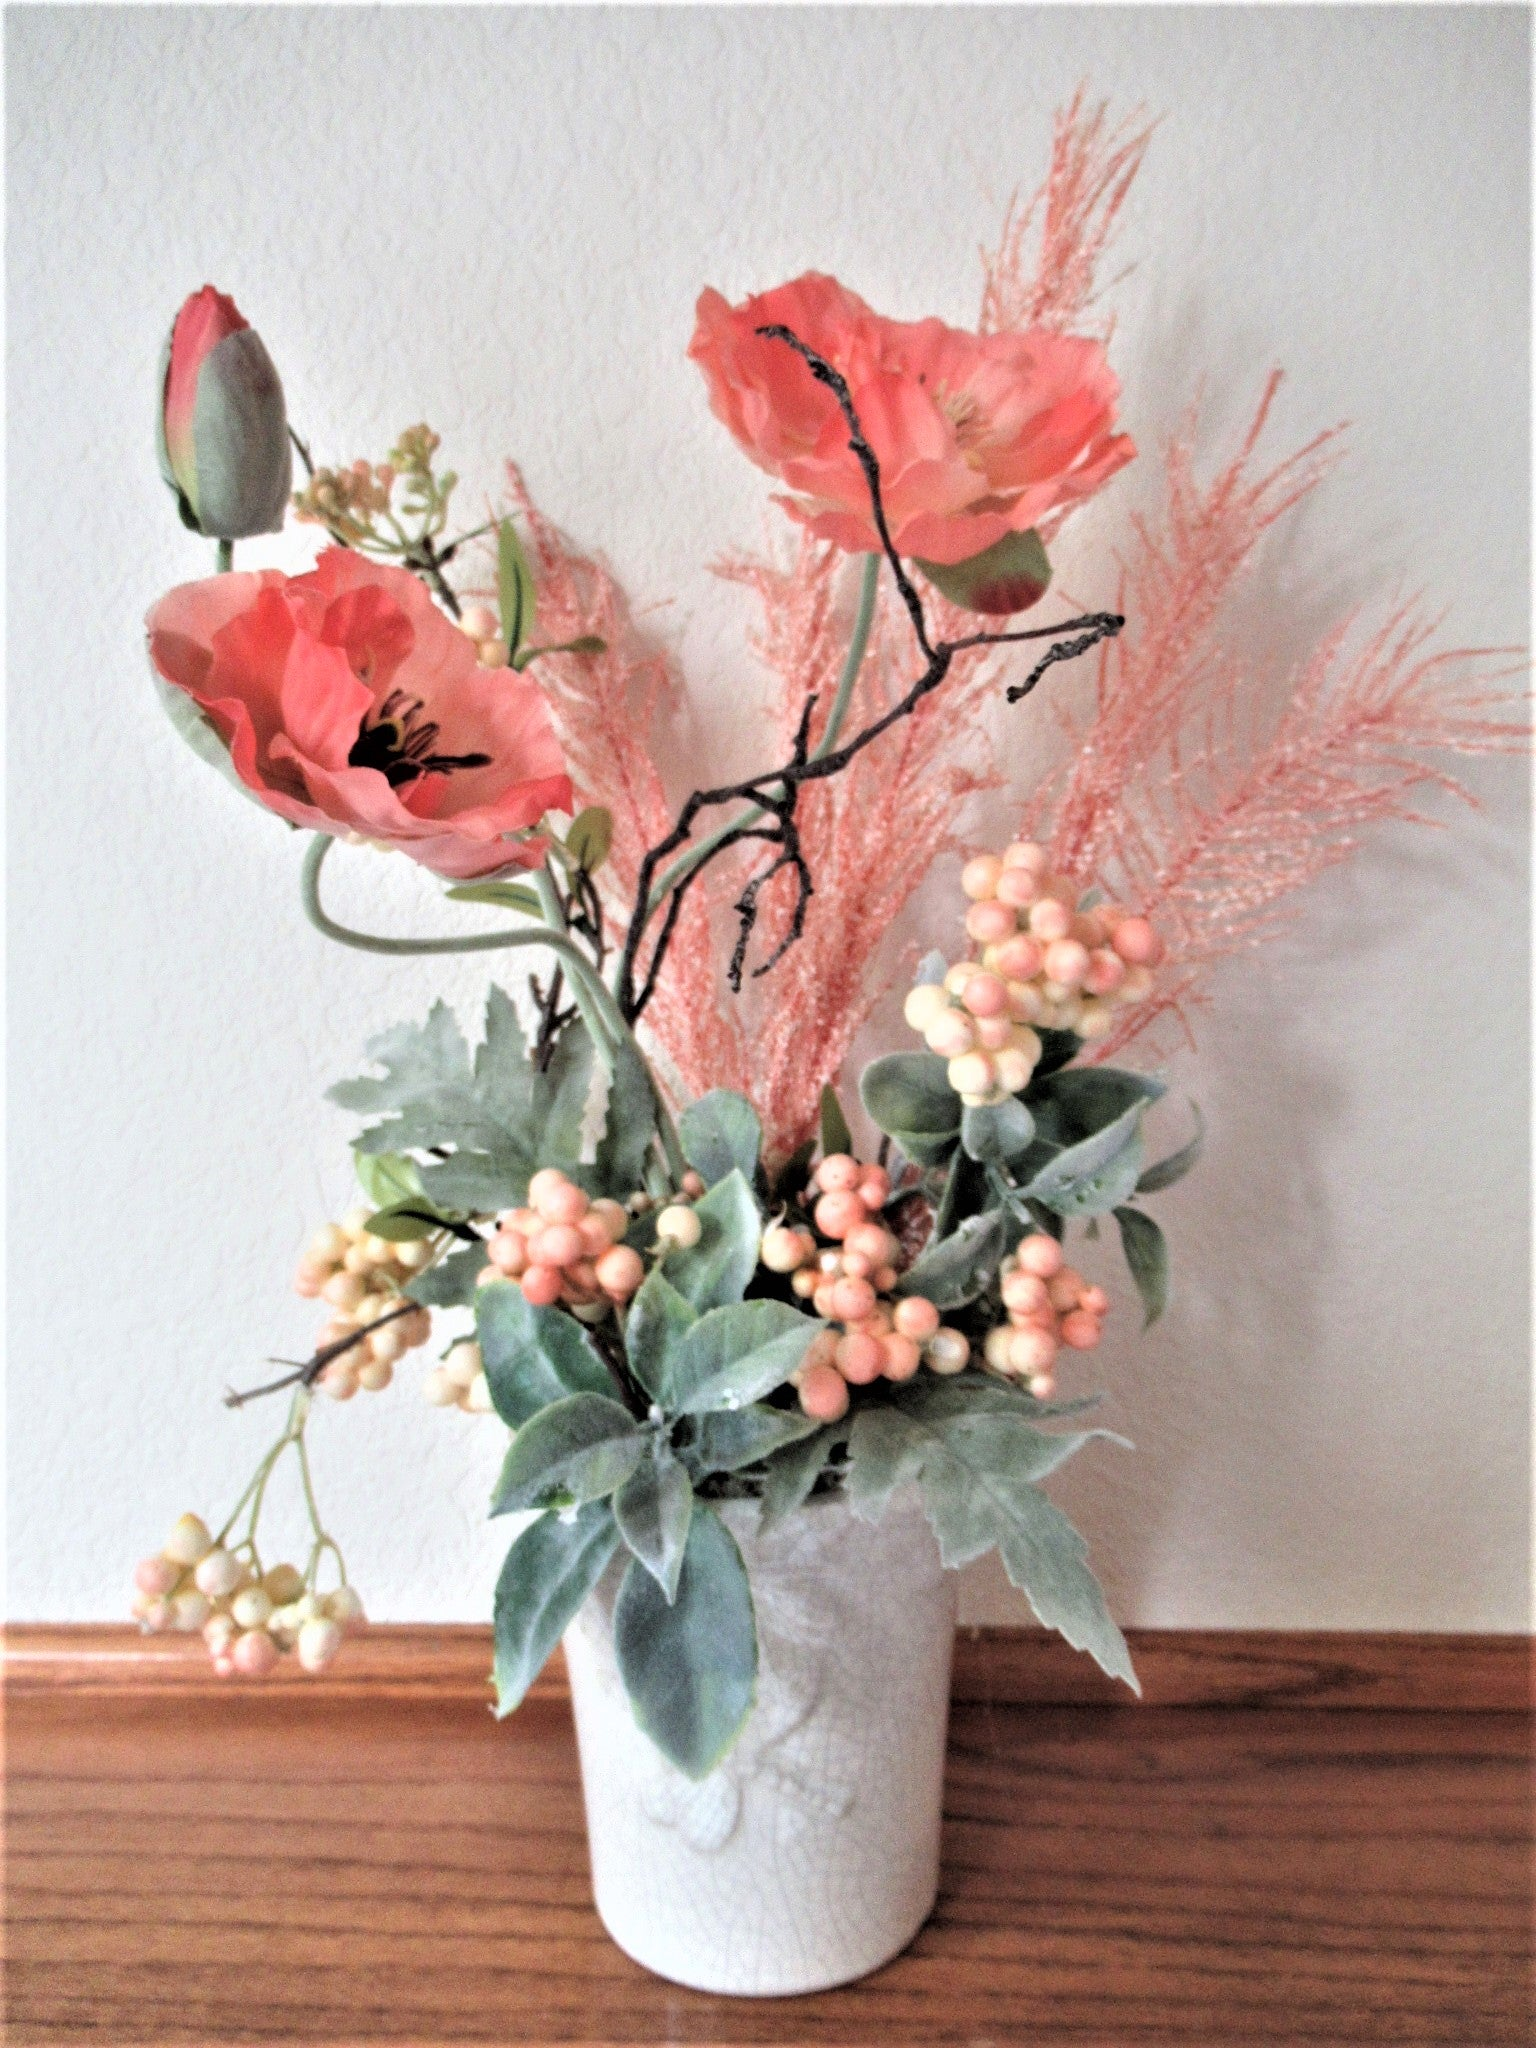 Coral Poppies, Berries and Fluffy Fronts with Light Sage Gray Green Lambs Ear Spring Summer Floral Arrangement - Odyssey Creations